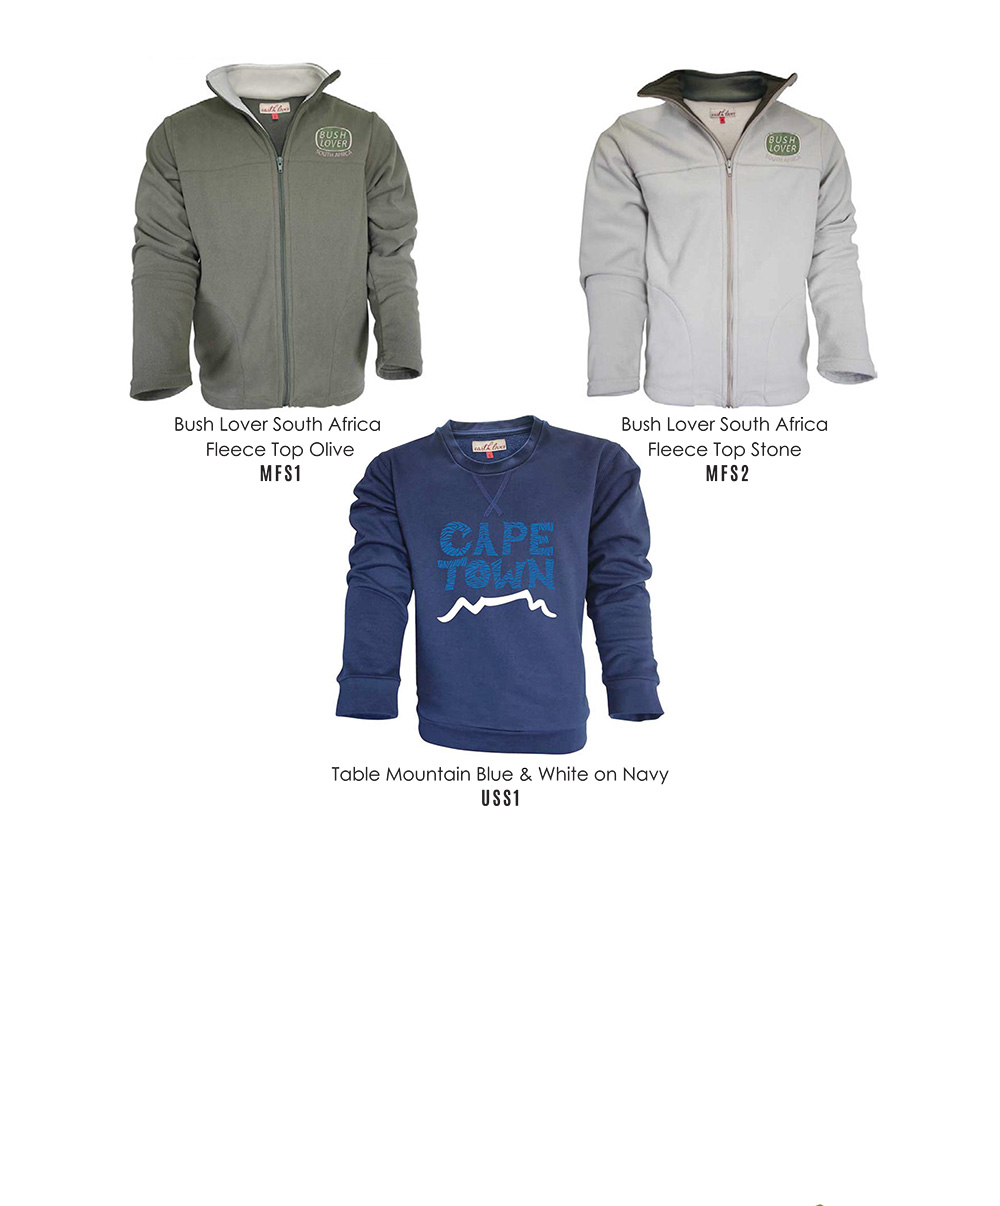 Mens Fleece Tops & Sweater Tops